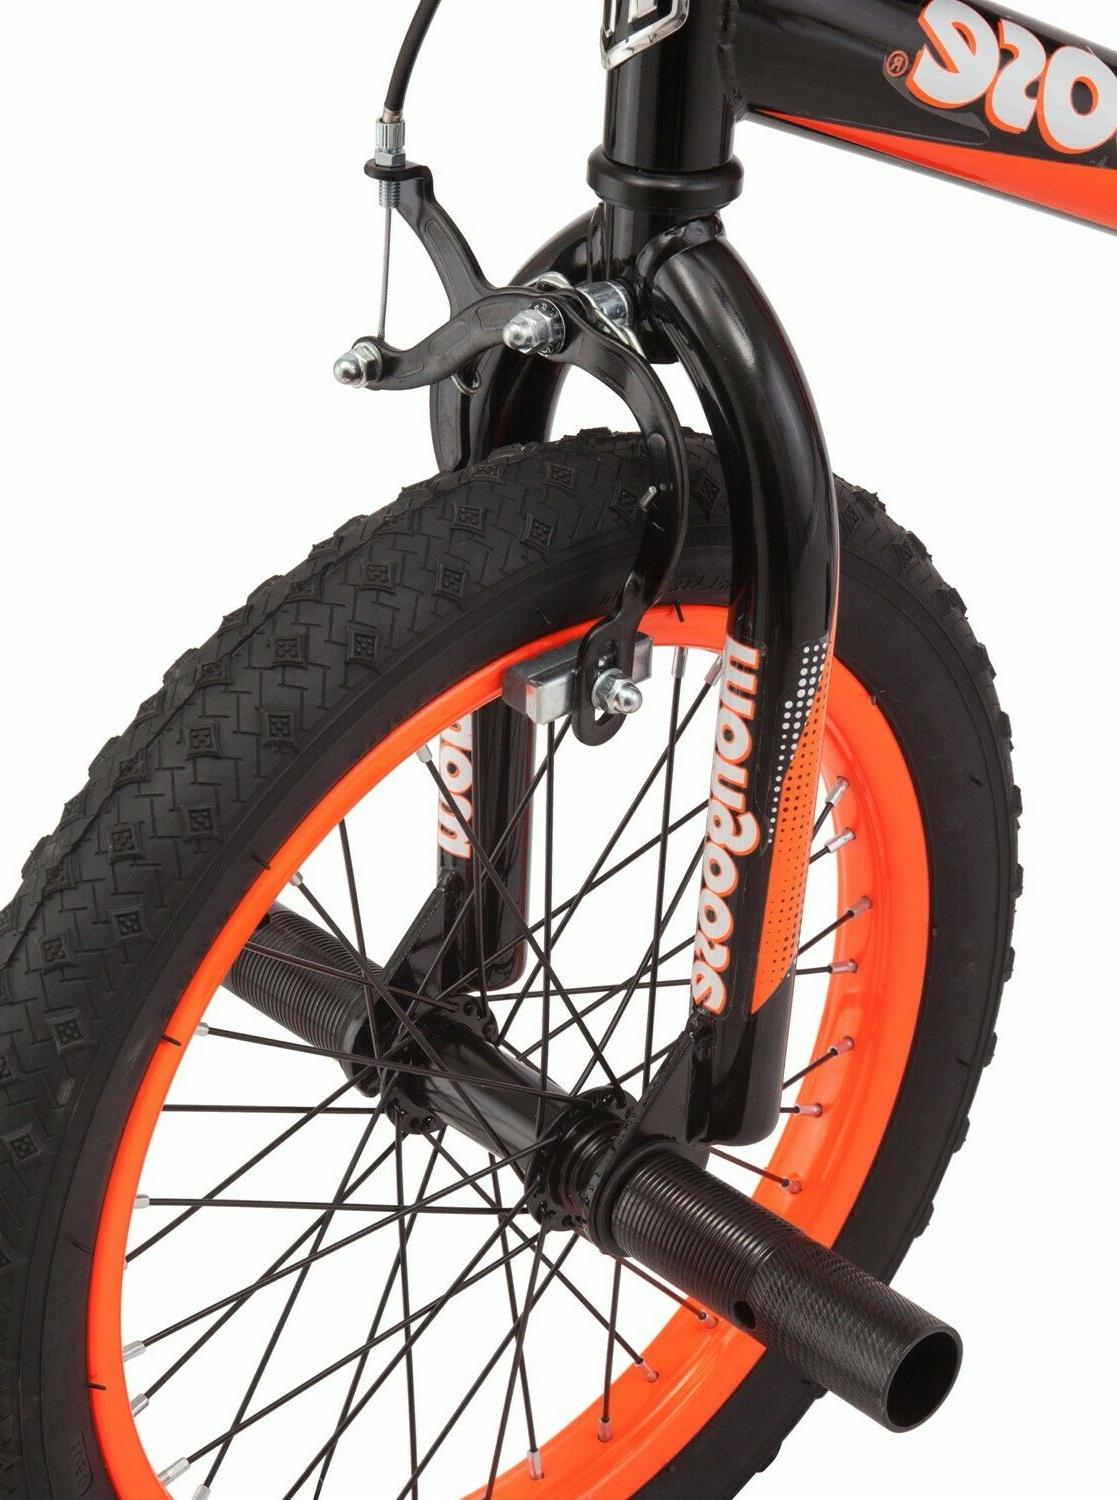 Mongoose BMX-Style Bike, 3 - 5, & Orange